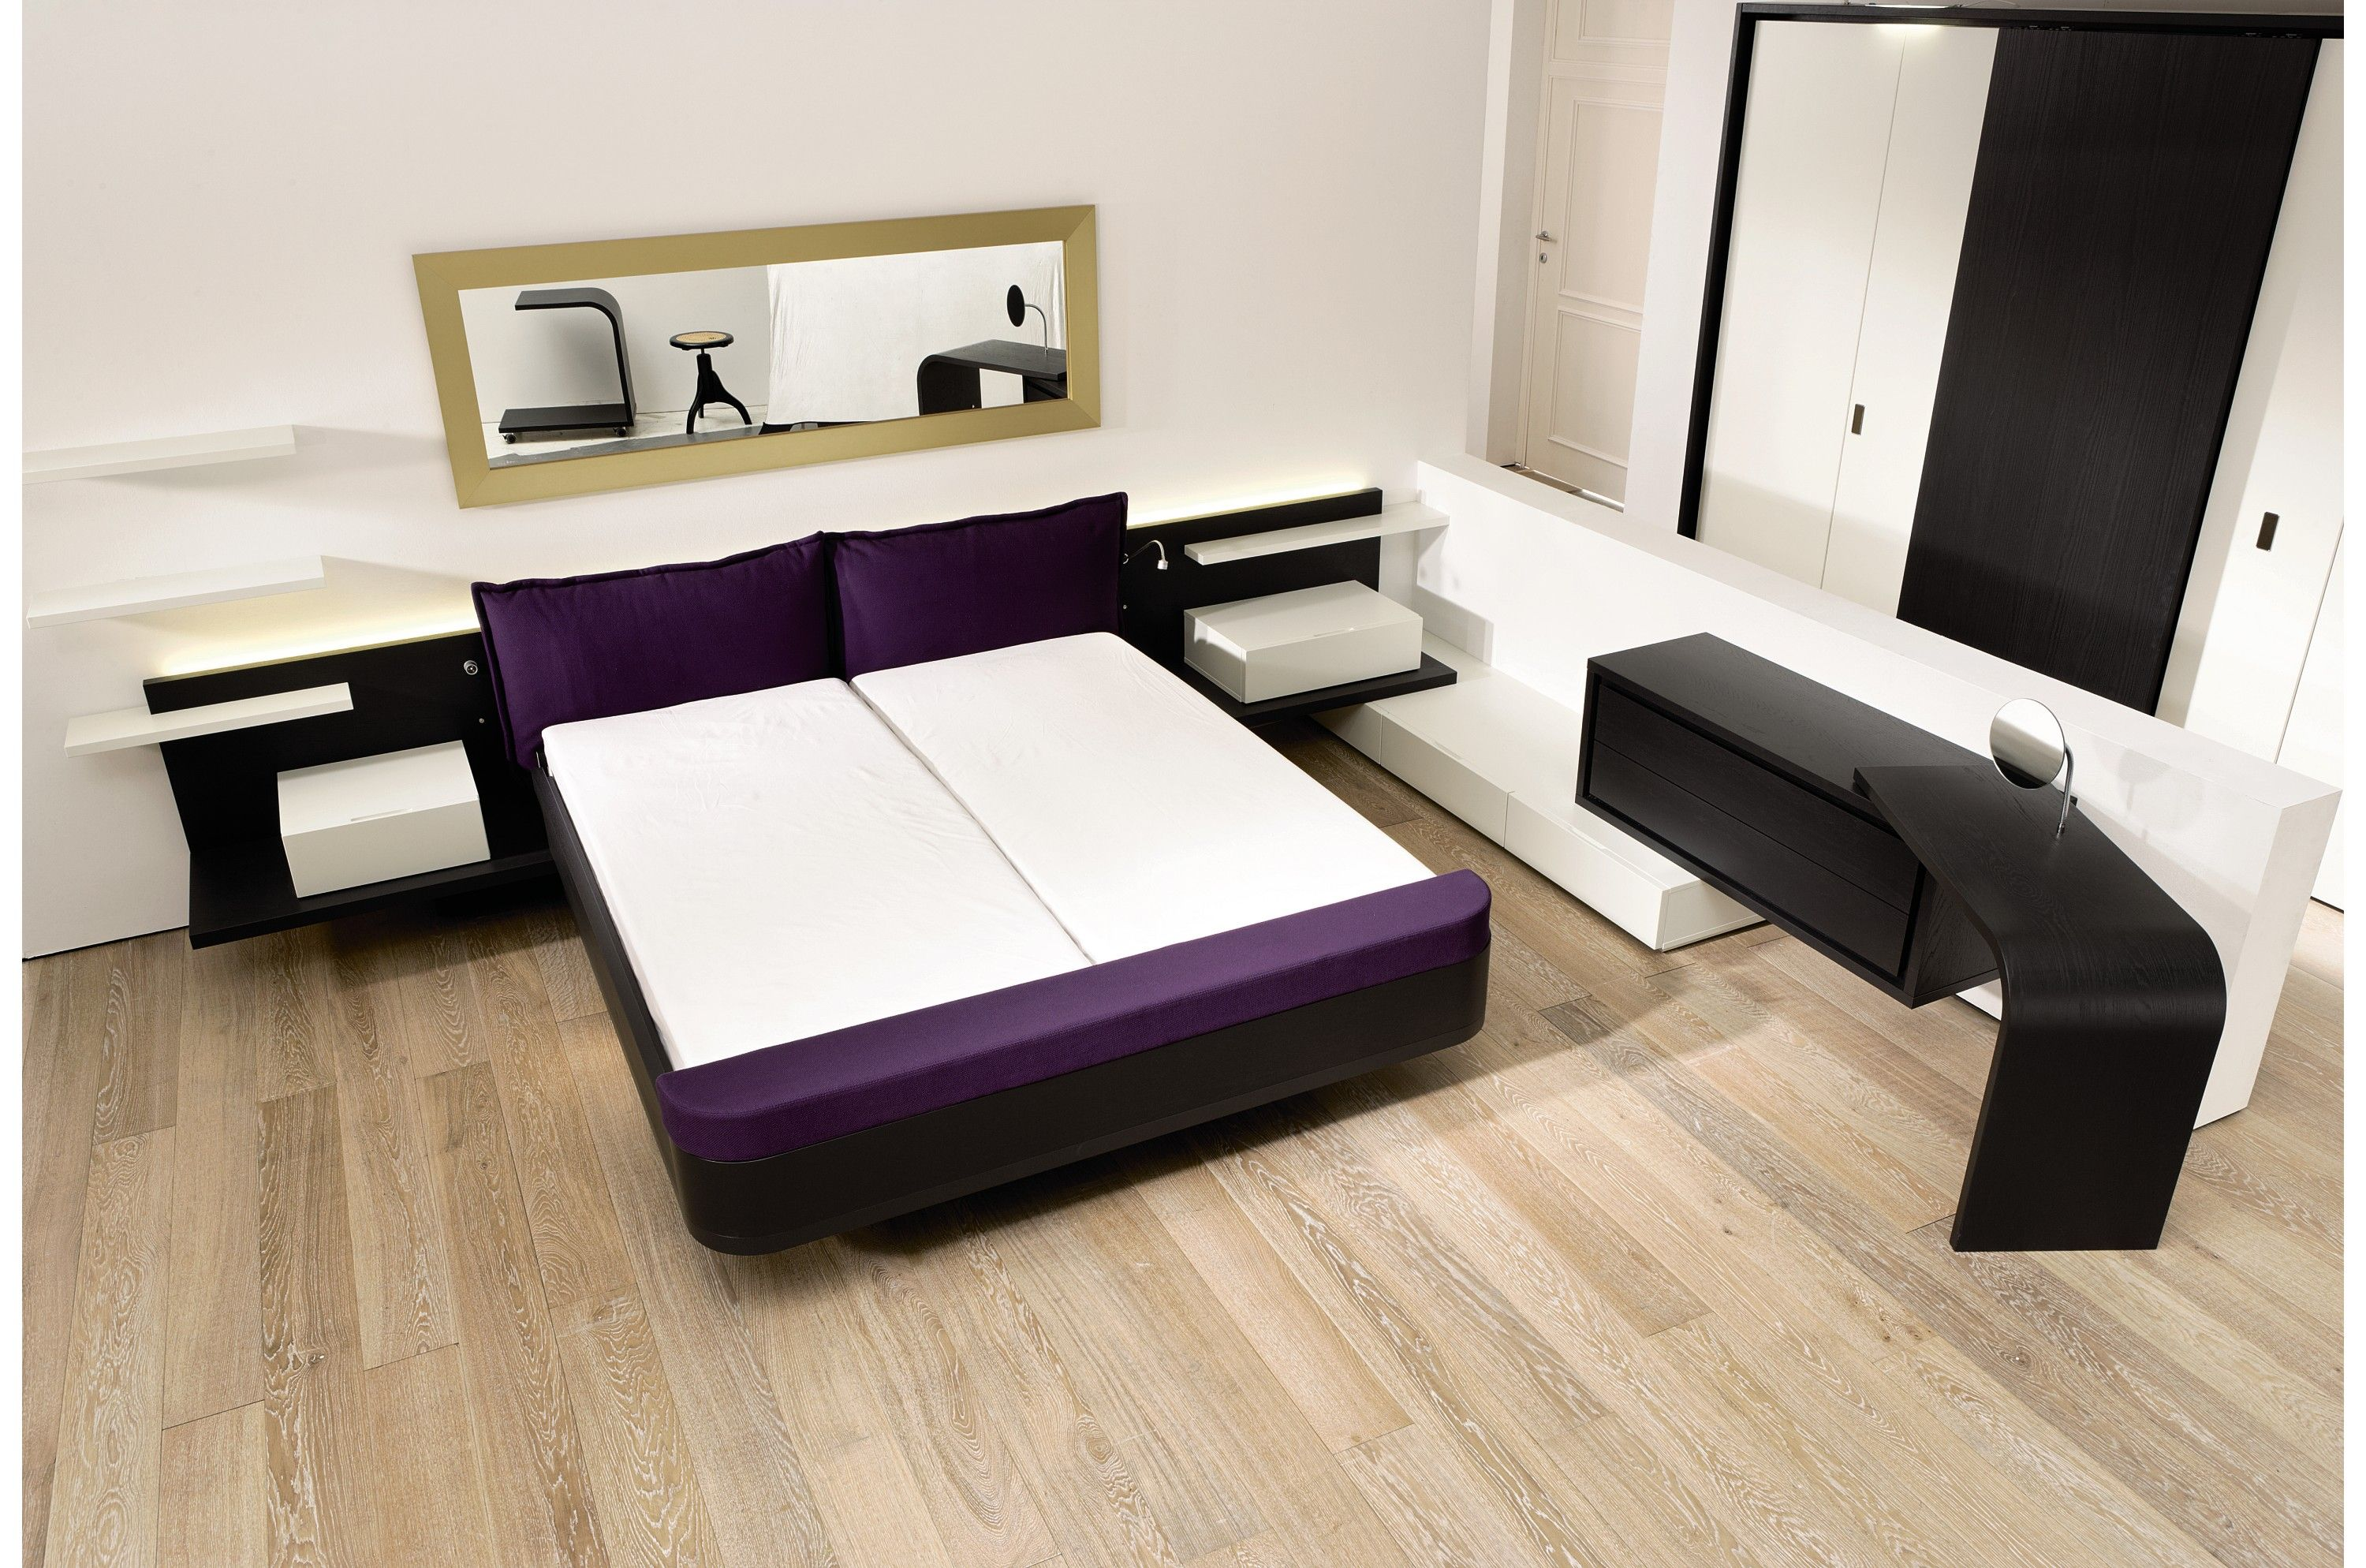 Fantastic Style Bedroom Inspiration For Girls with Wooden Floor also White  Wall Paint Color and Black